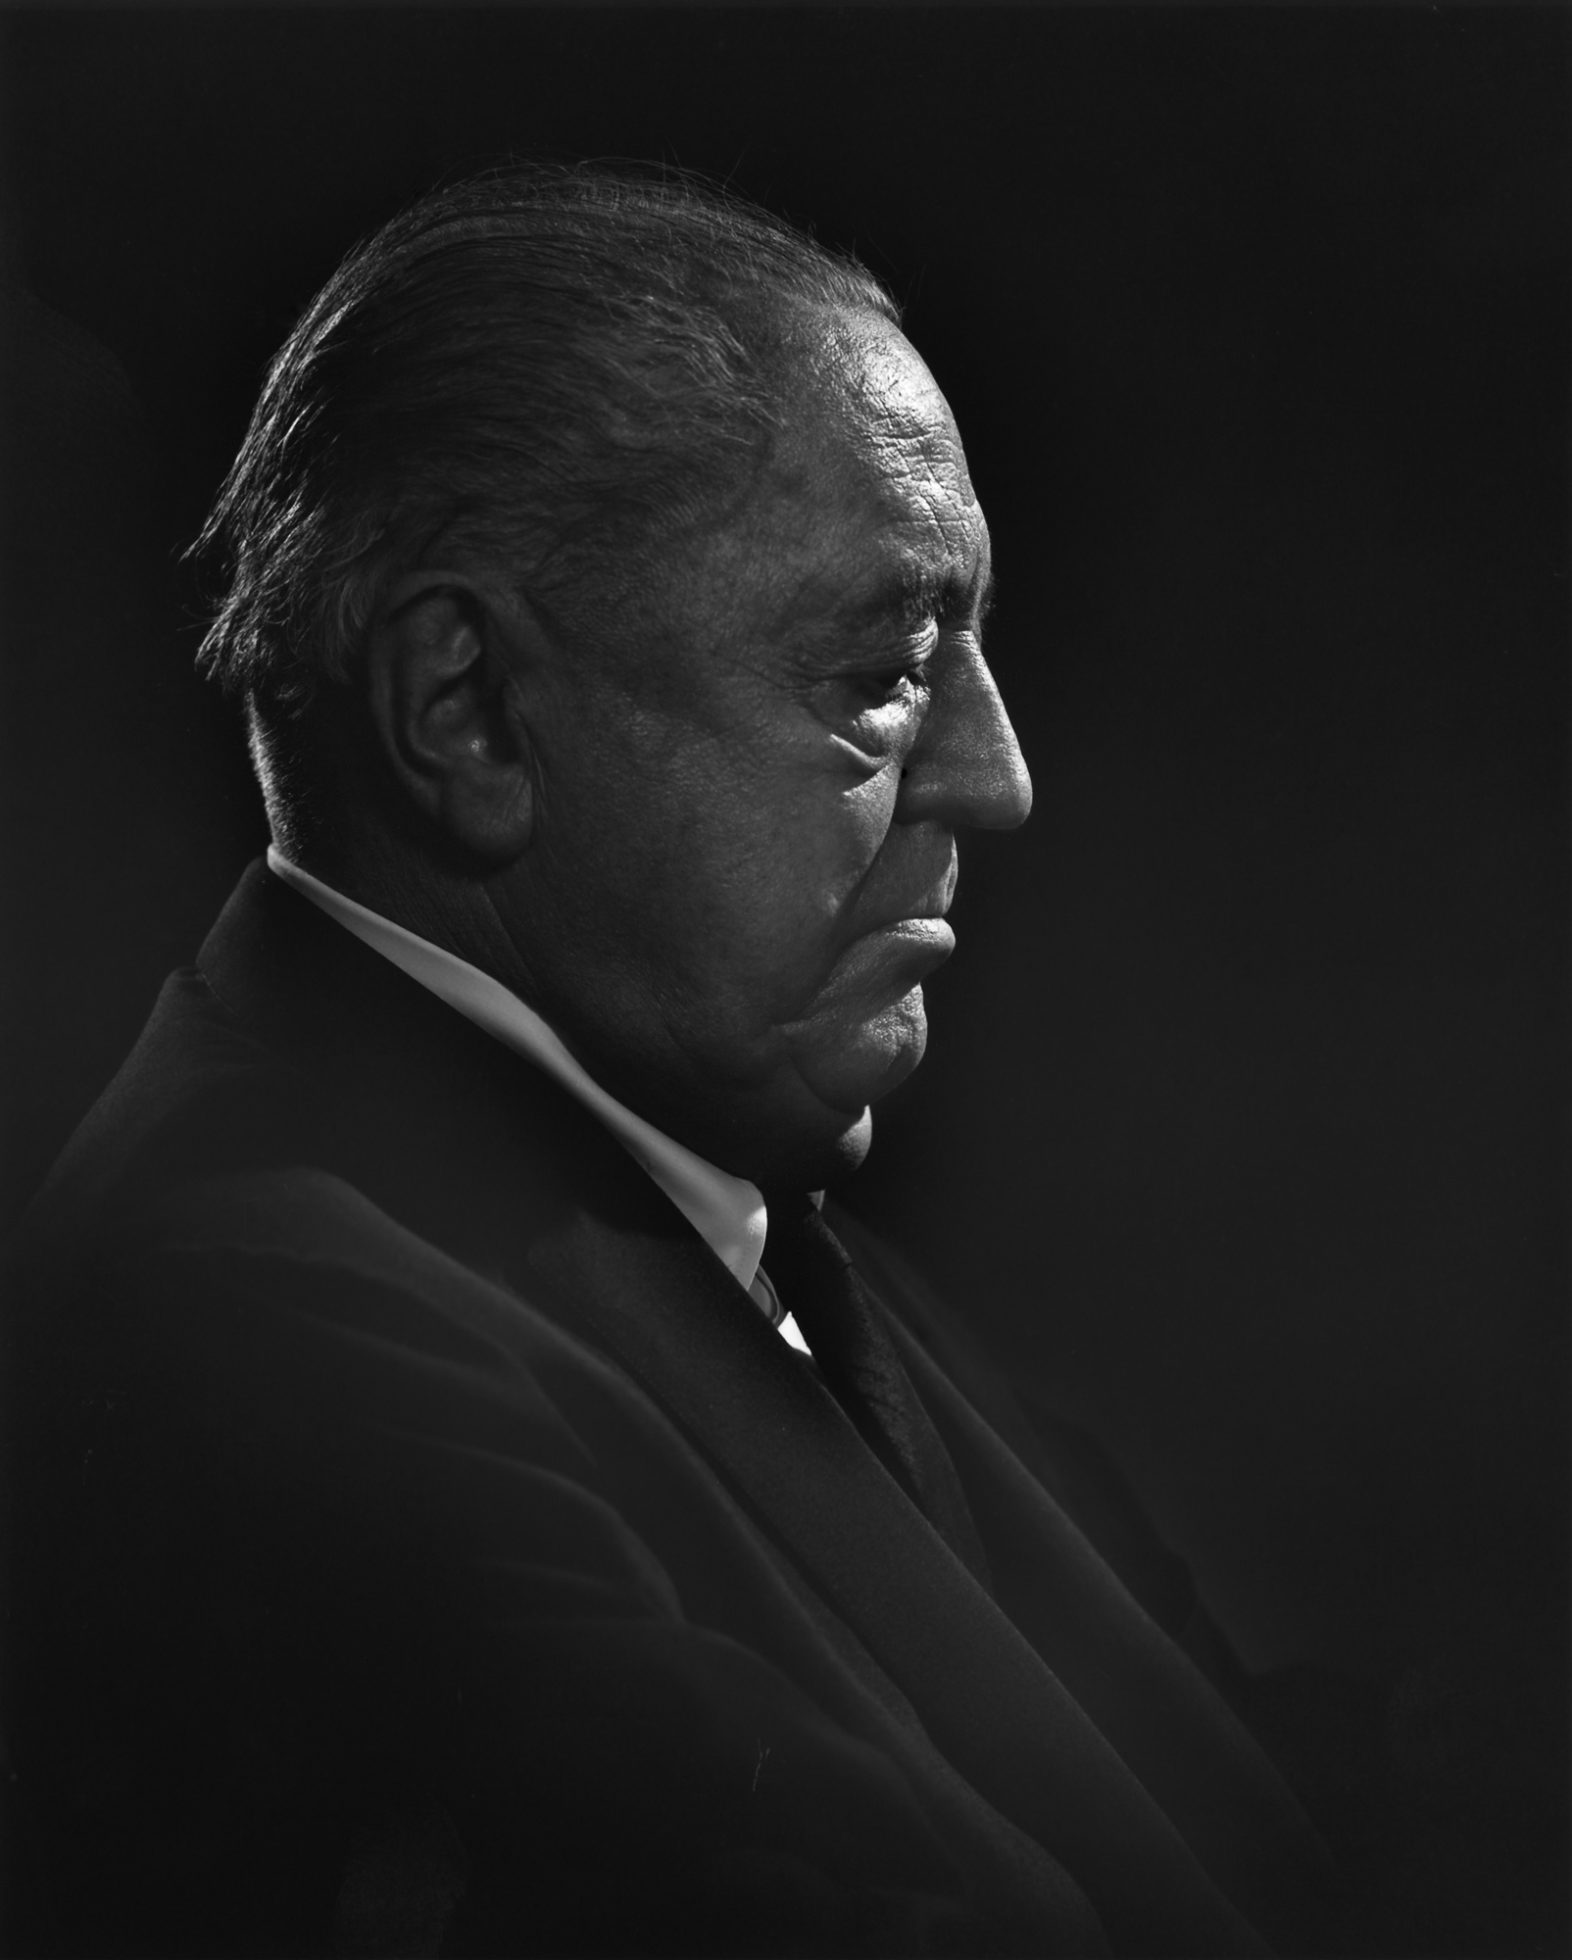 ludwig mies van der rohe yousuf karsh. Black Bedroom Furniture Sets. Home Design Ideas